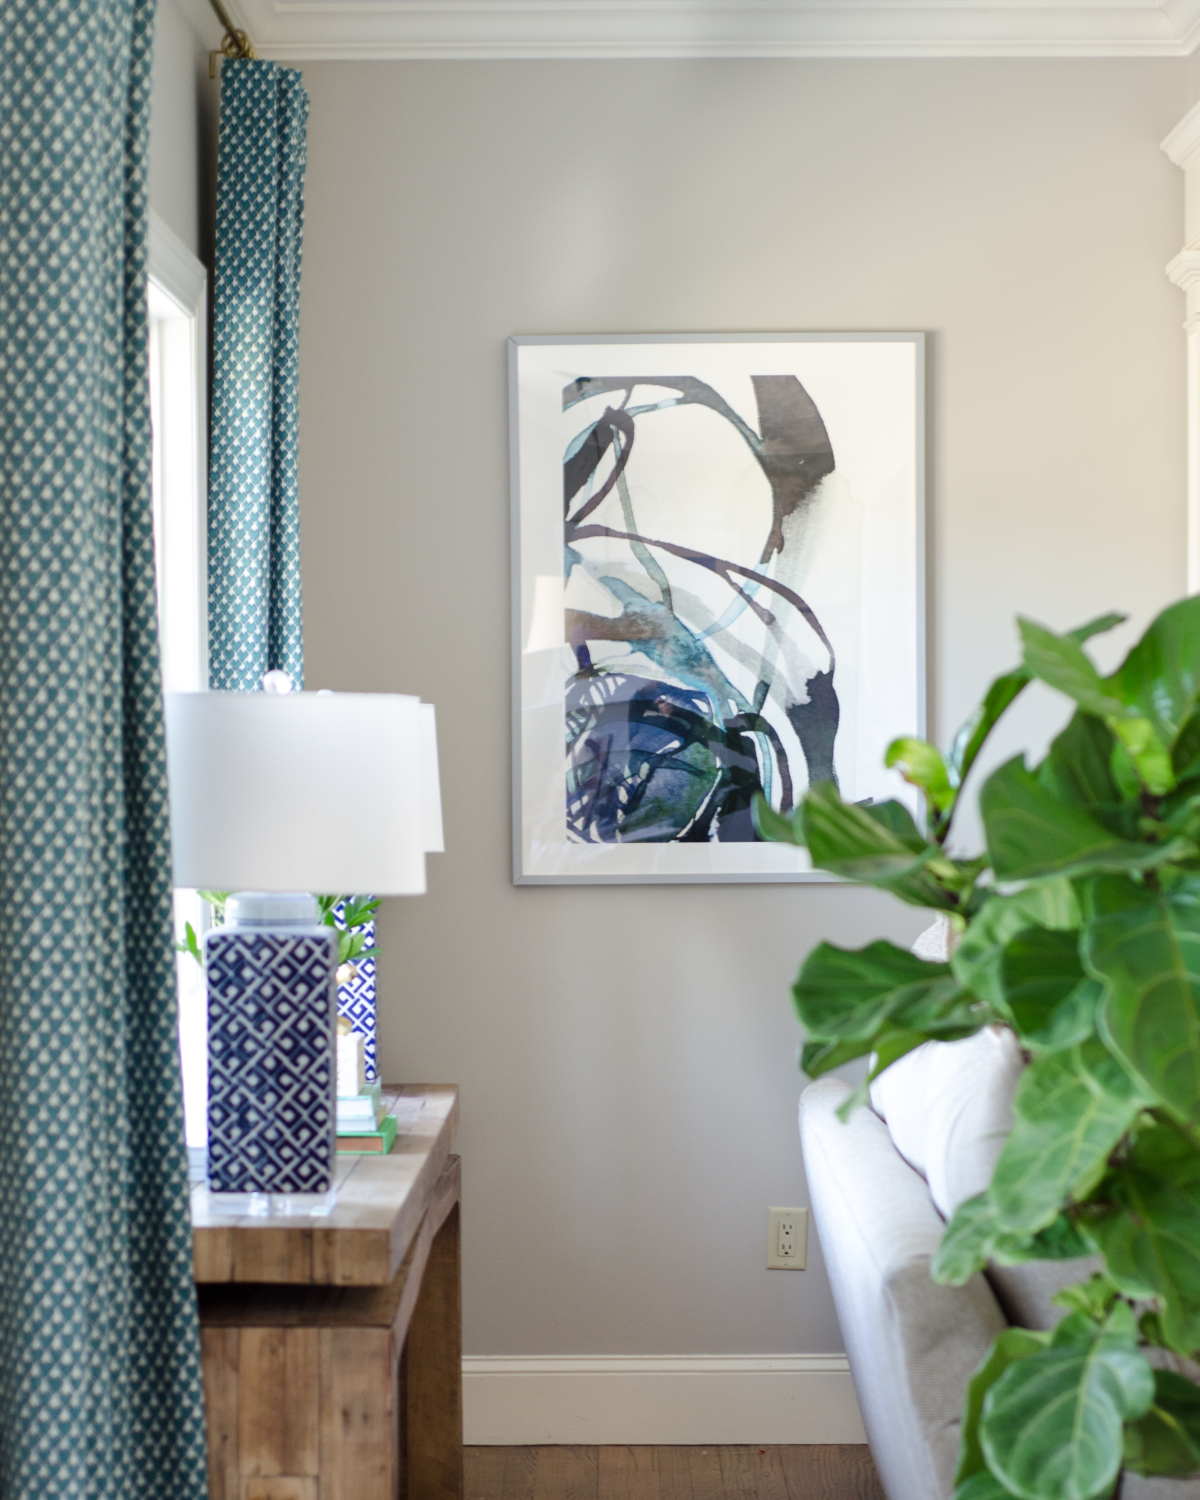 Custom framed art prints and practical, actionable tips on how to choose artwork for a room